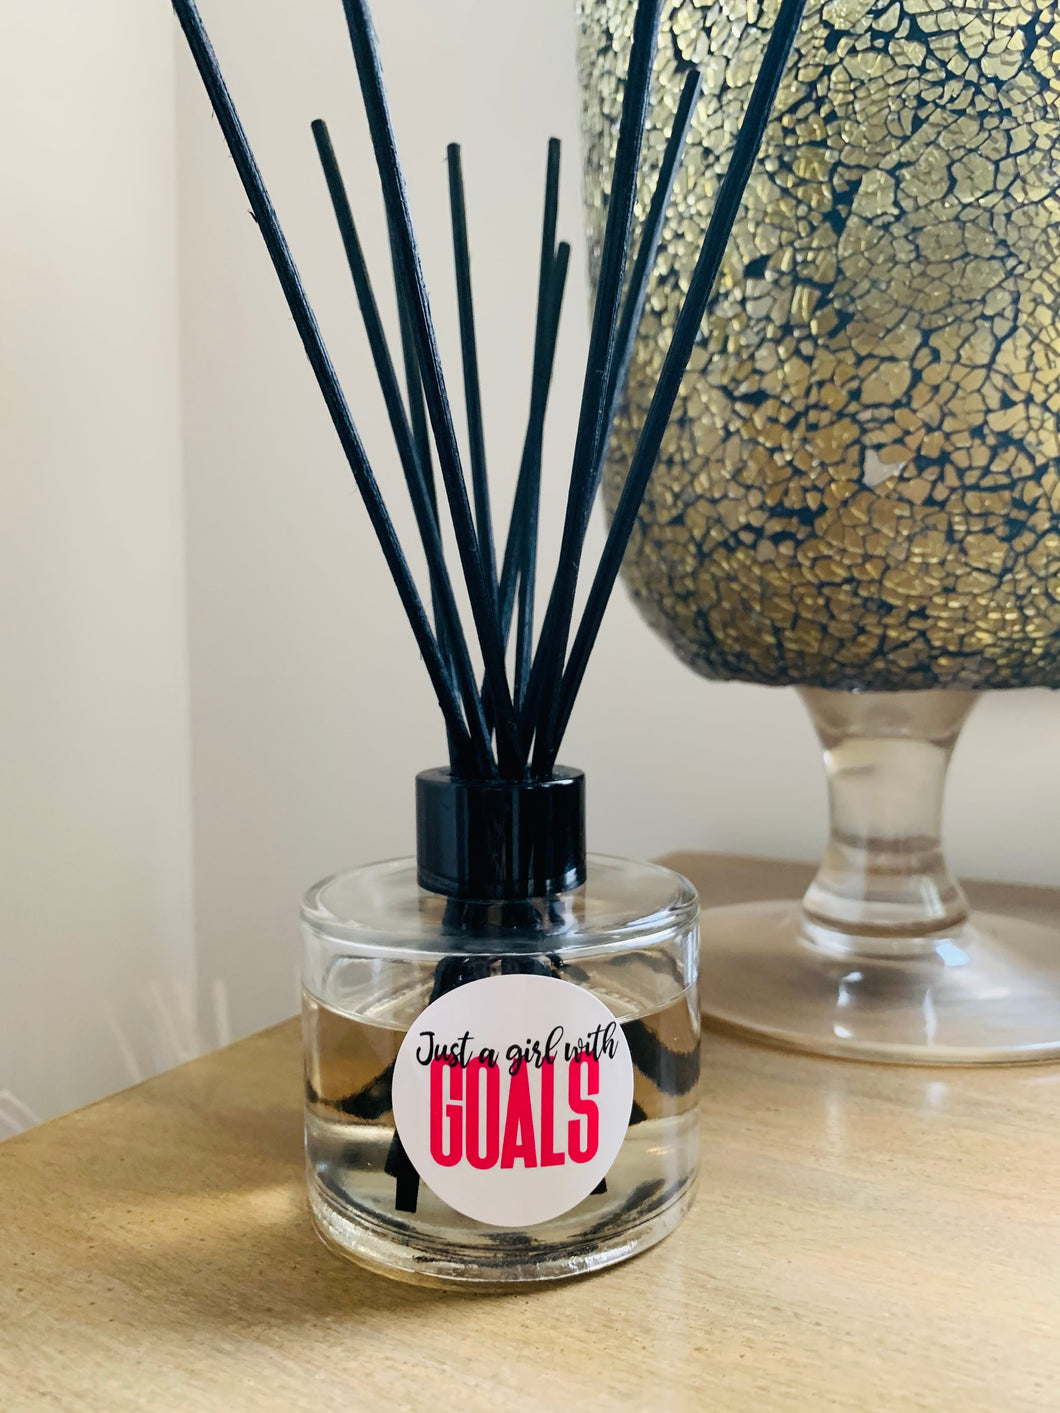 Girl with Goals Glass Diffuser